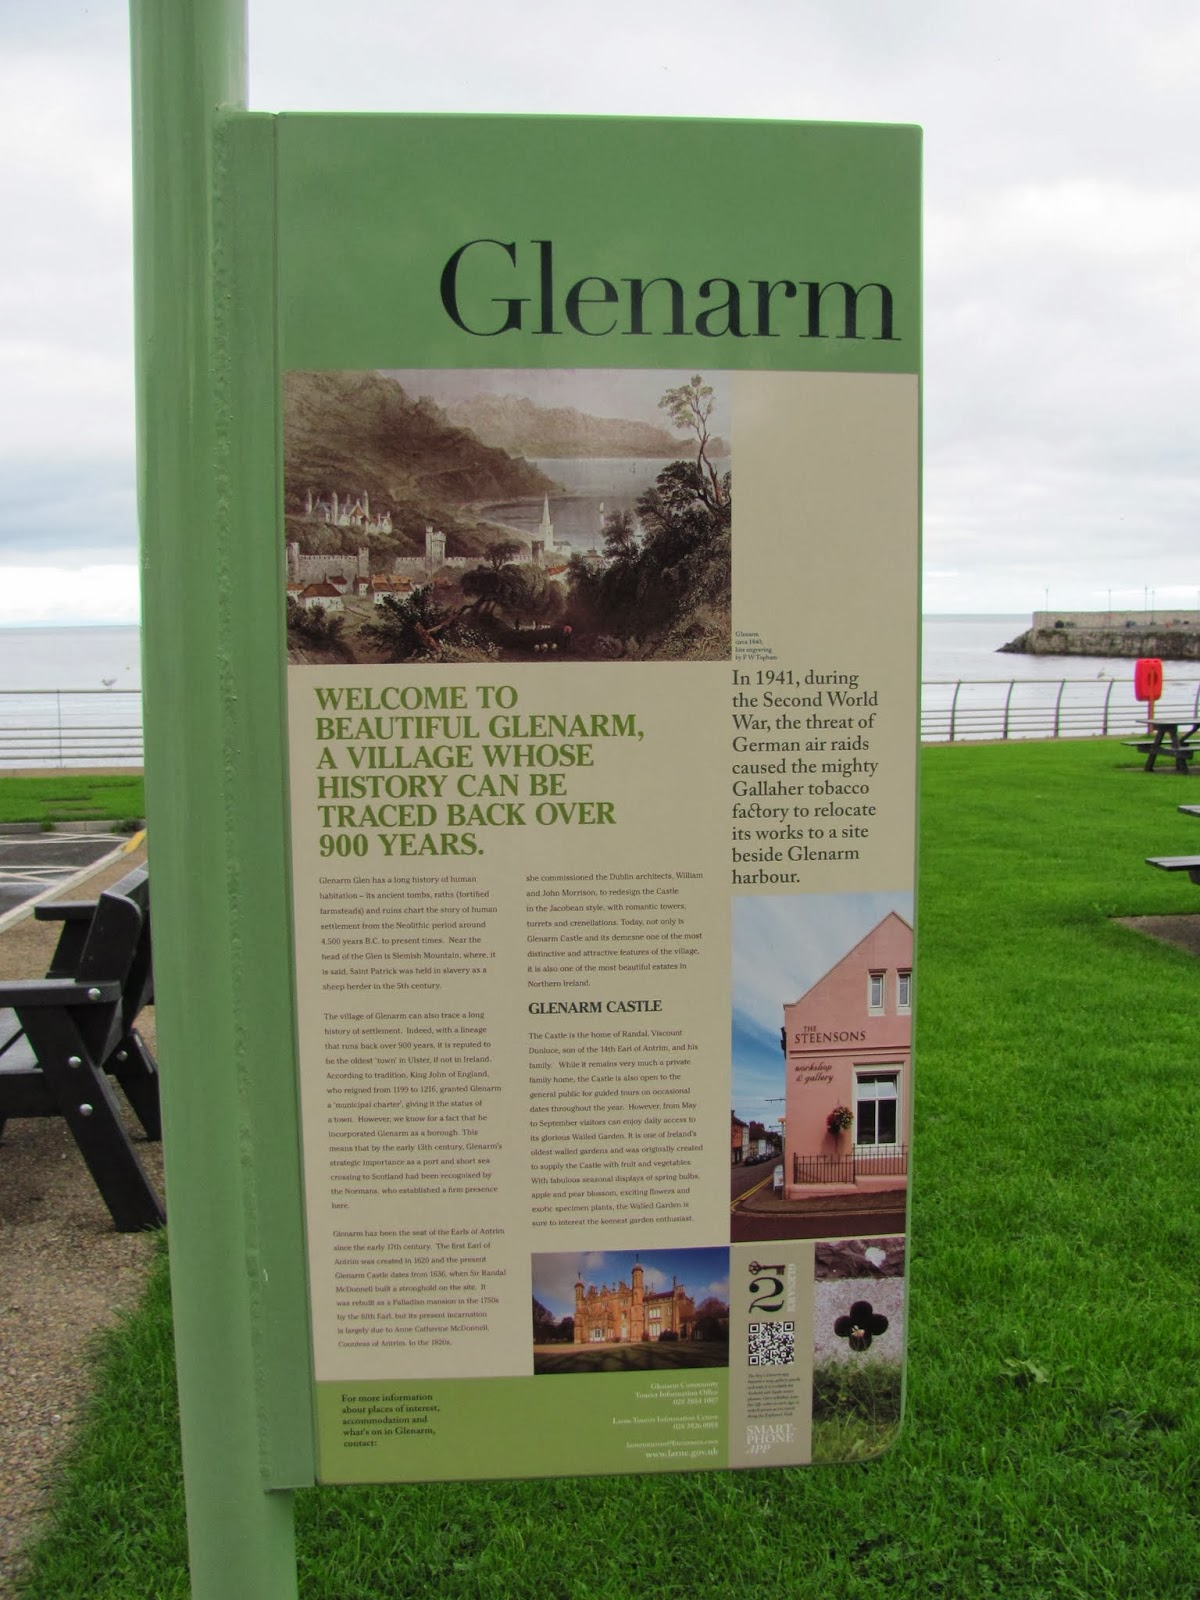 A Glenarm park sign in Northern Ireland